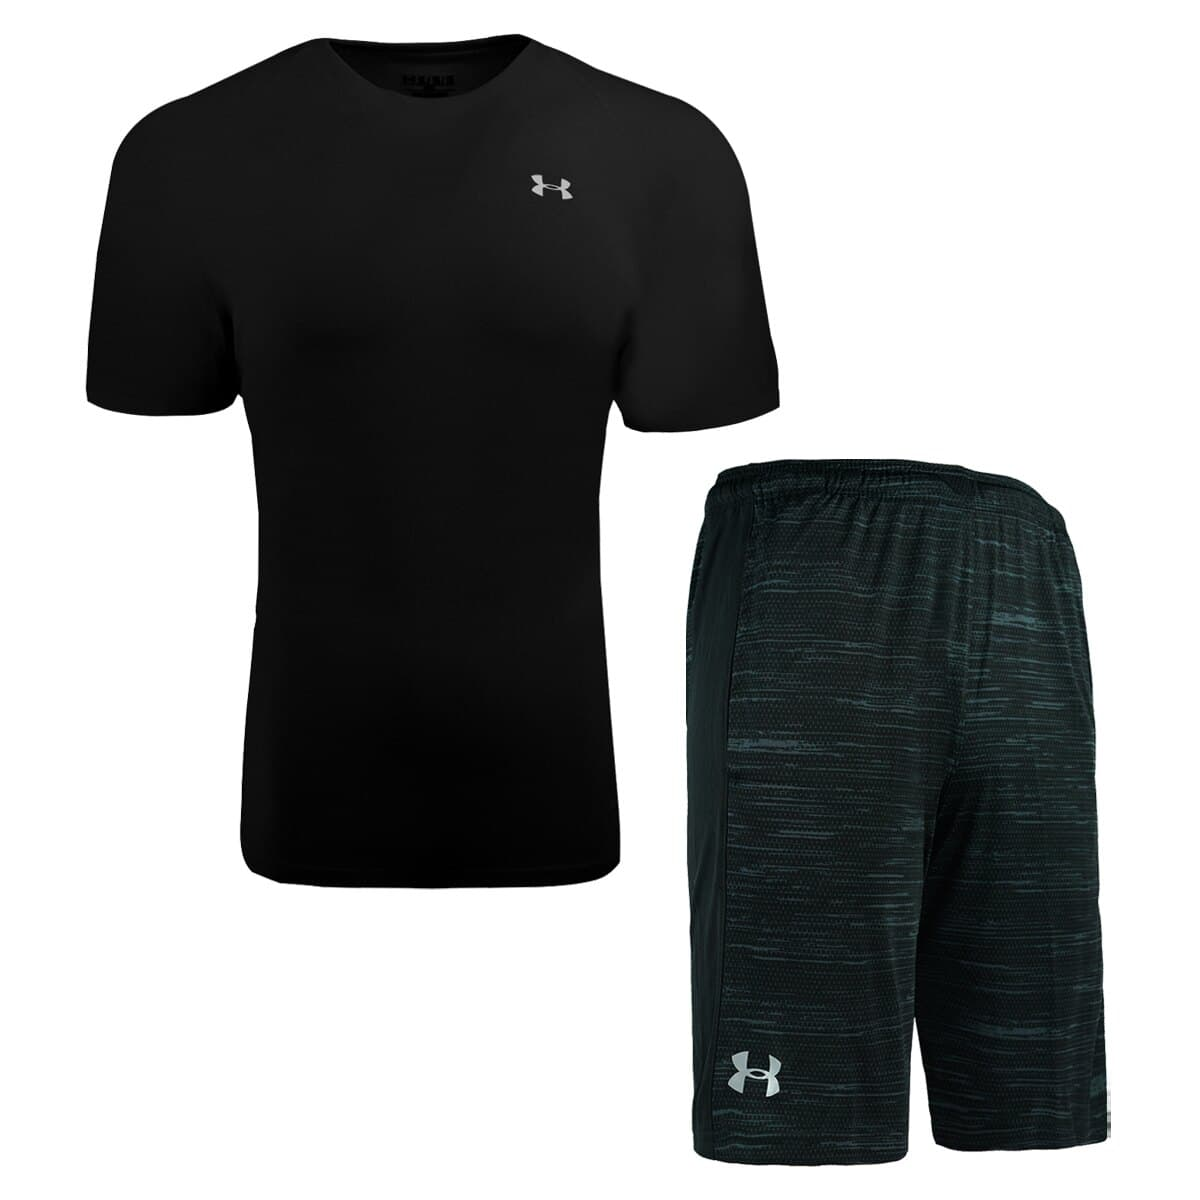 Under Armour Men's UA Tech T-Shirt and Graphic Short Set : $22.39 AC + Free Shipping